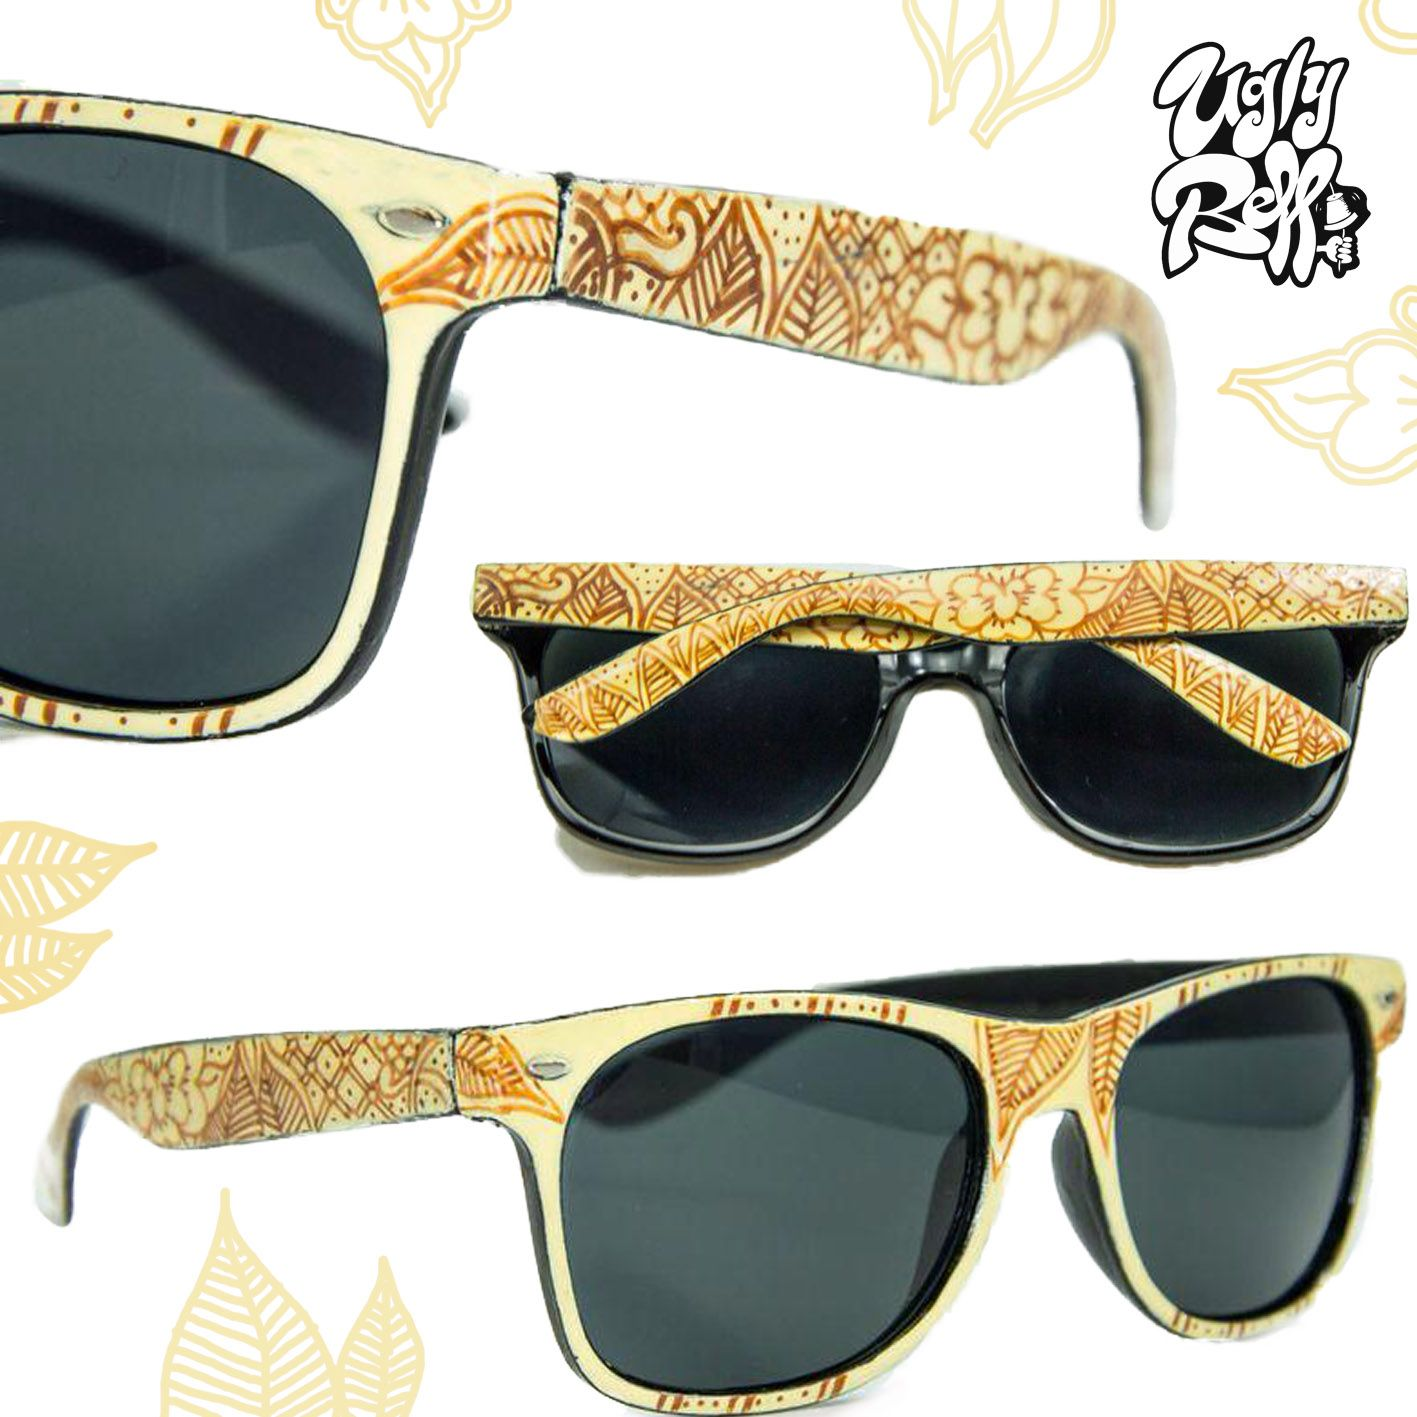 palm tree pattern sunglasses all sides painted custom painted by custom painted by hand great attention to detail using high quality paints you dont have t pinteres